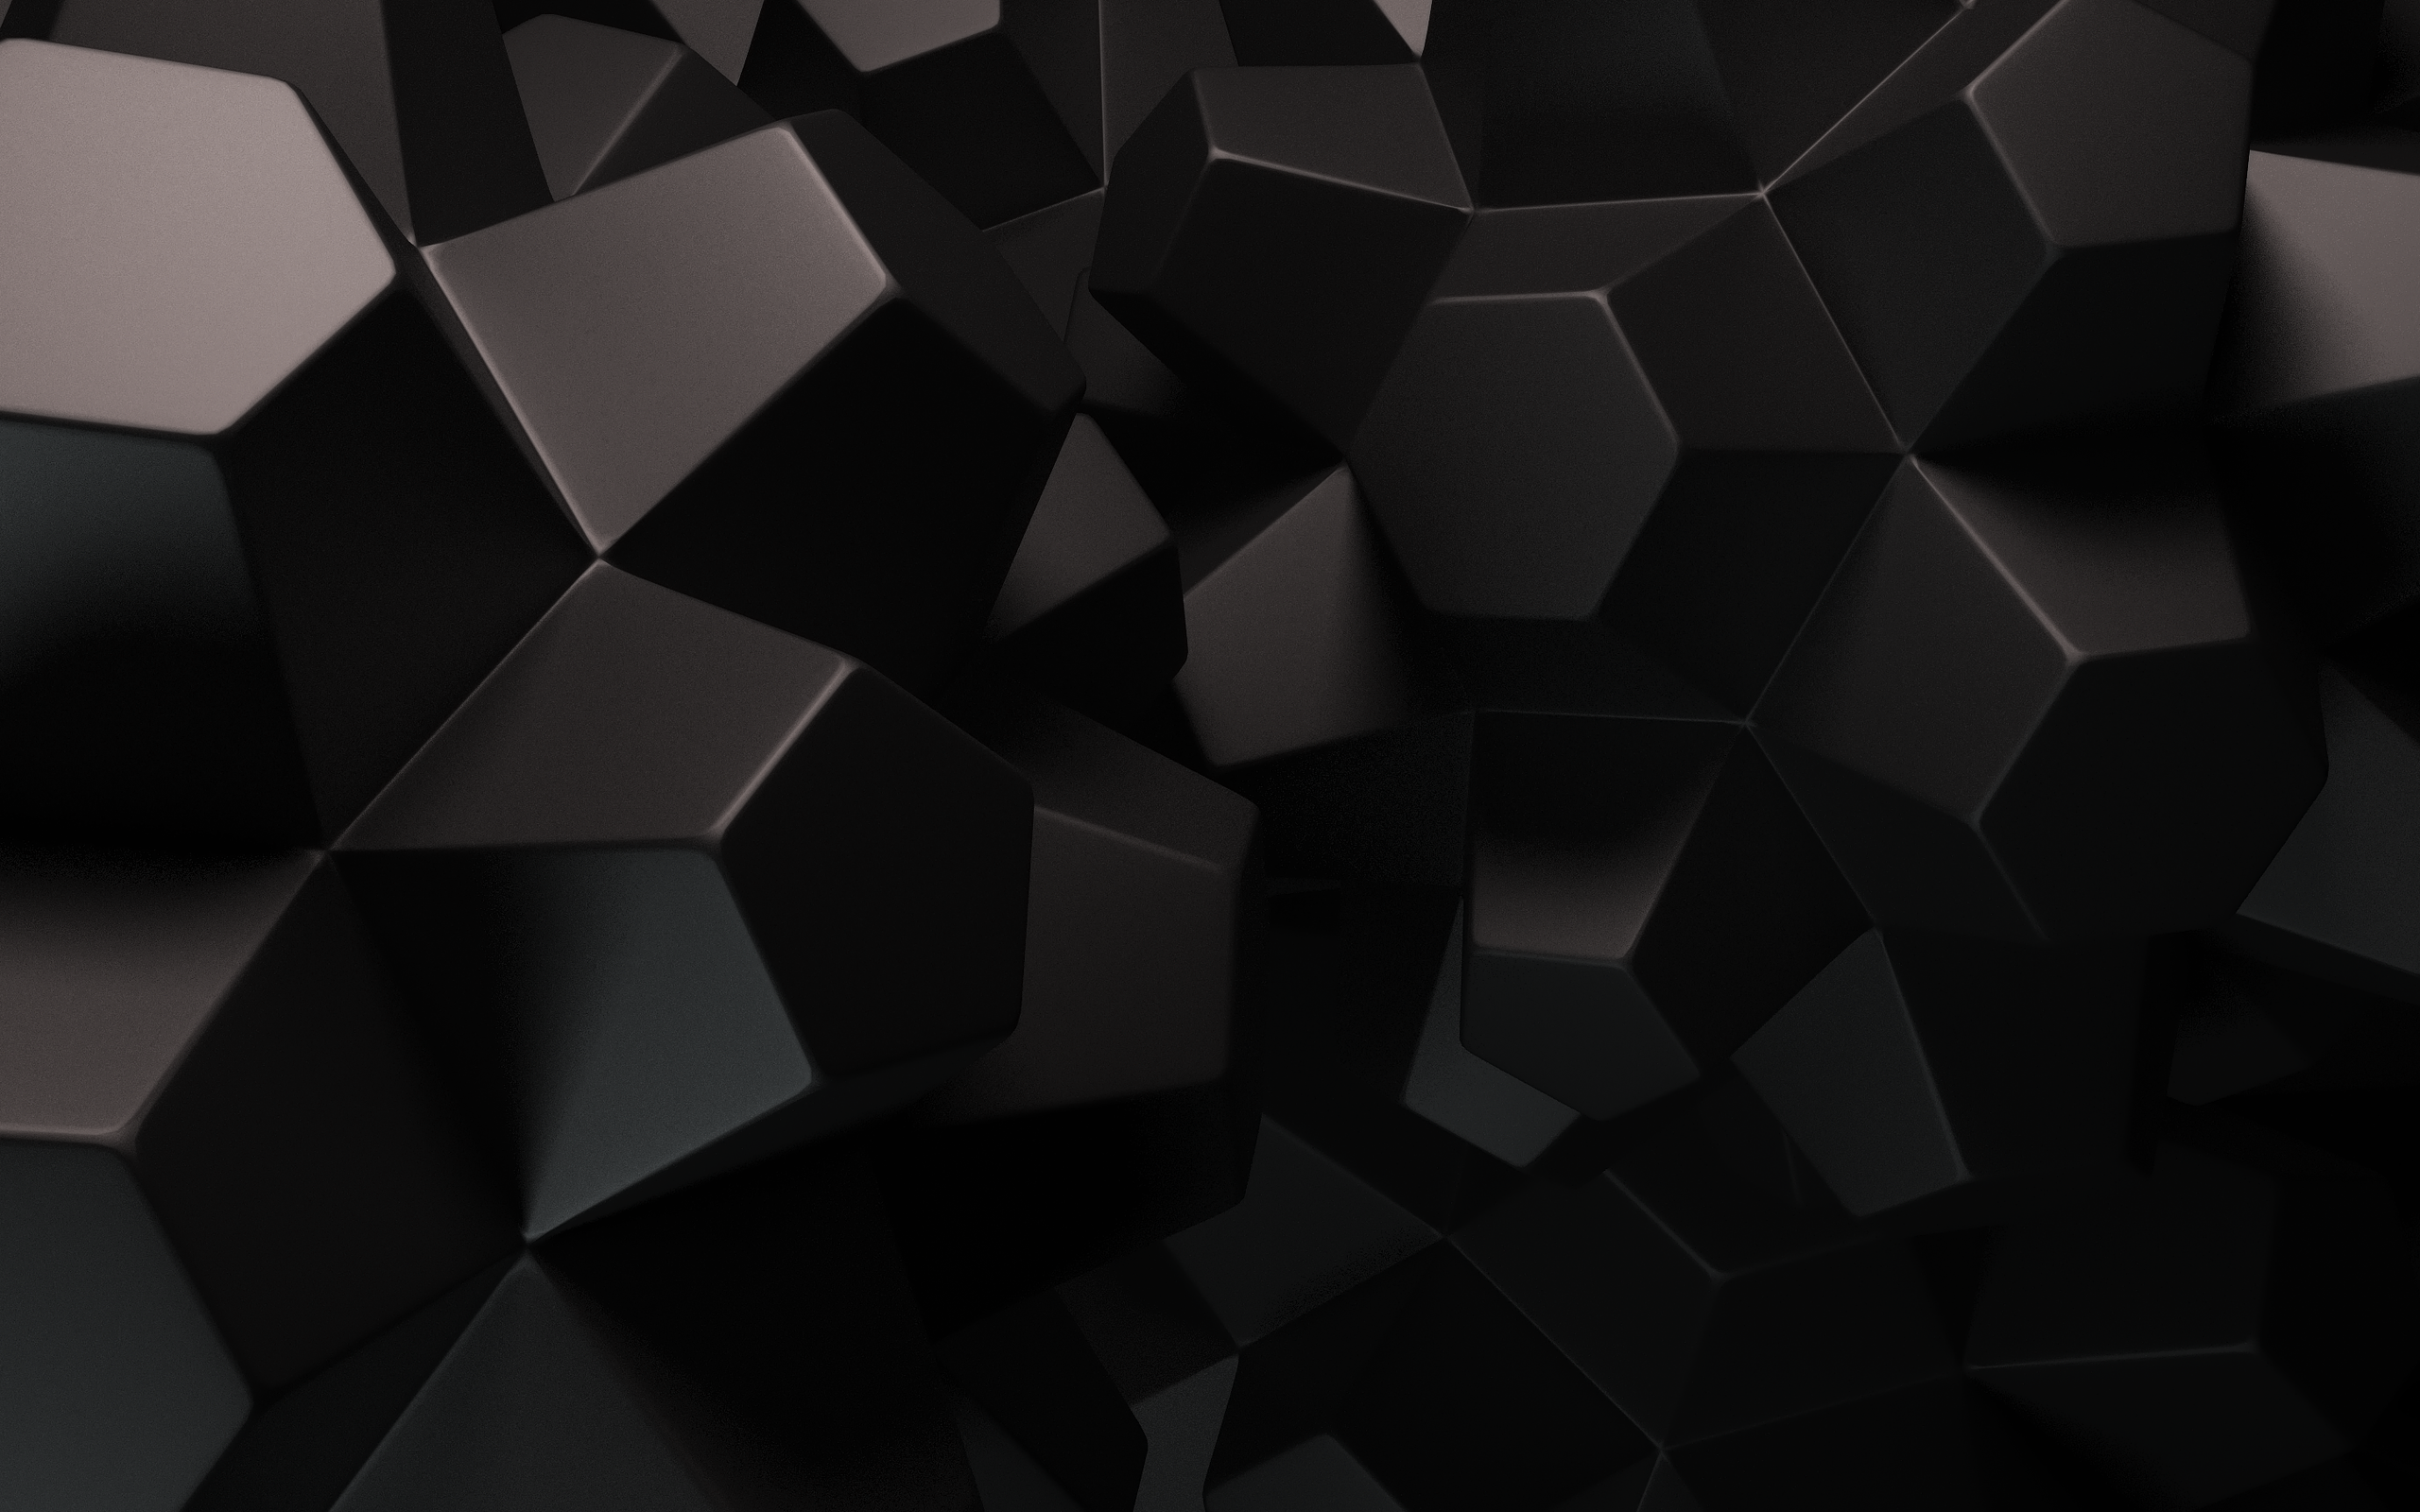 October 13, 2015 Shapes | Resolution: 2560x1600 px, Nick Atterbury